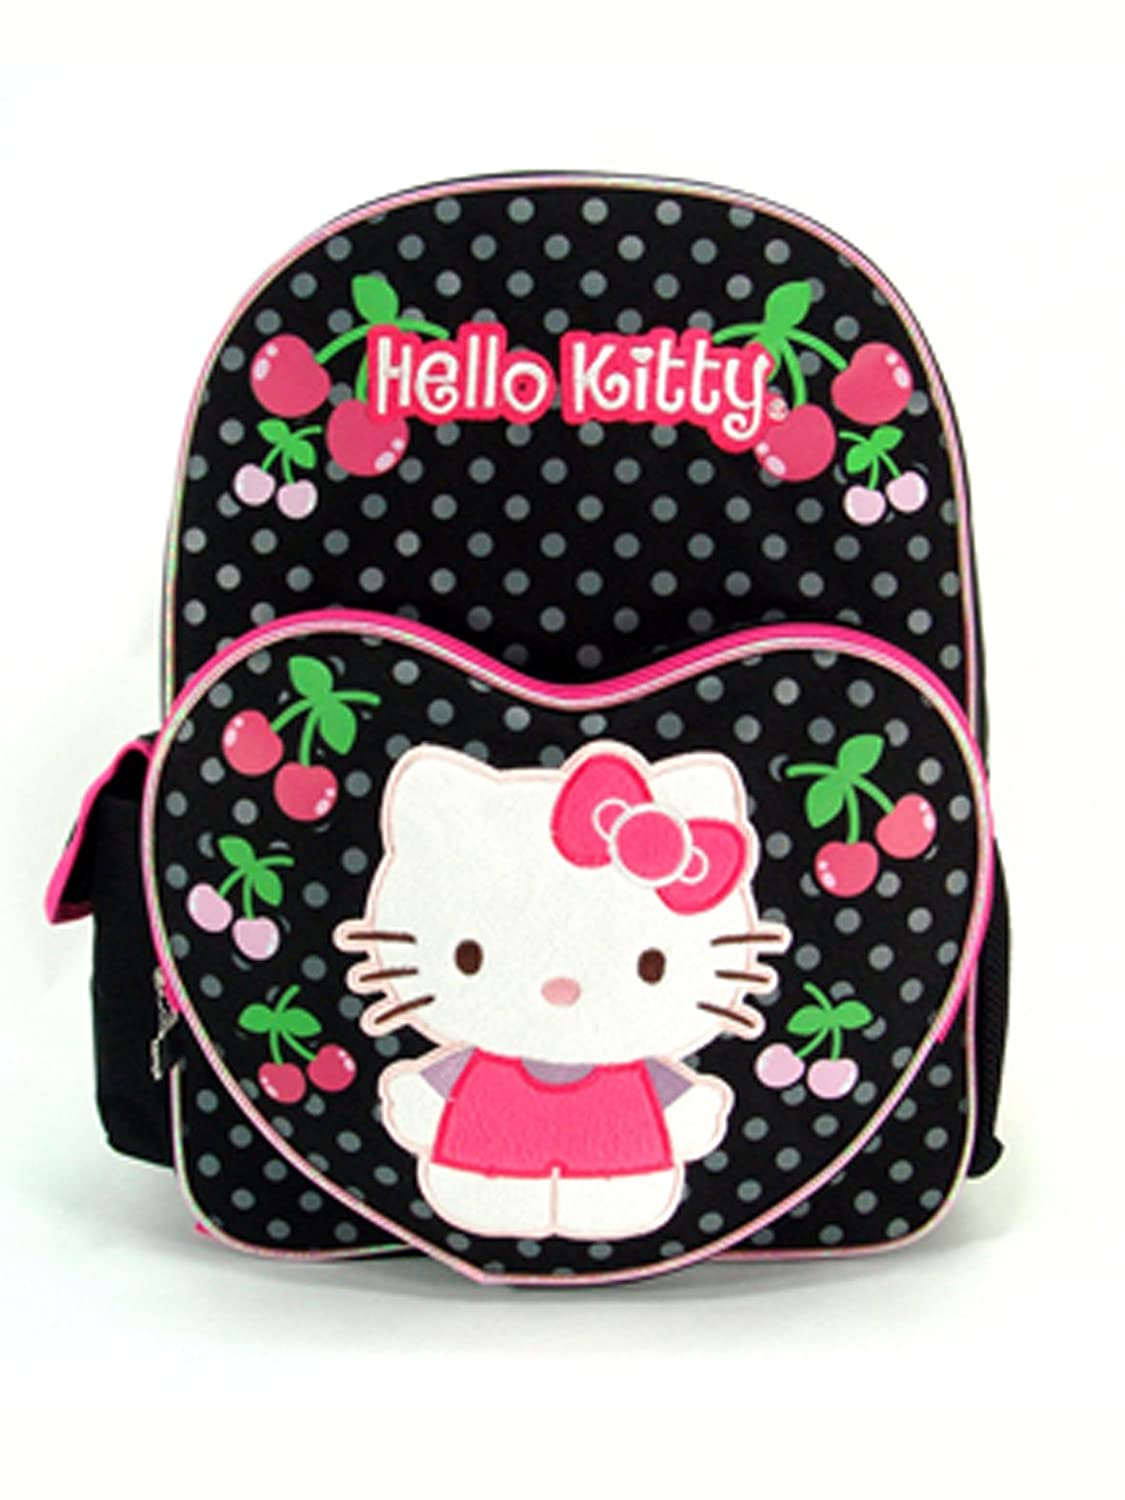 0f8631b298 Amazon.com  Sanrio Hello Kitty Backpack - Black Polka Cherry 16